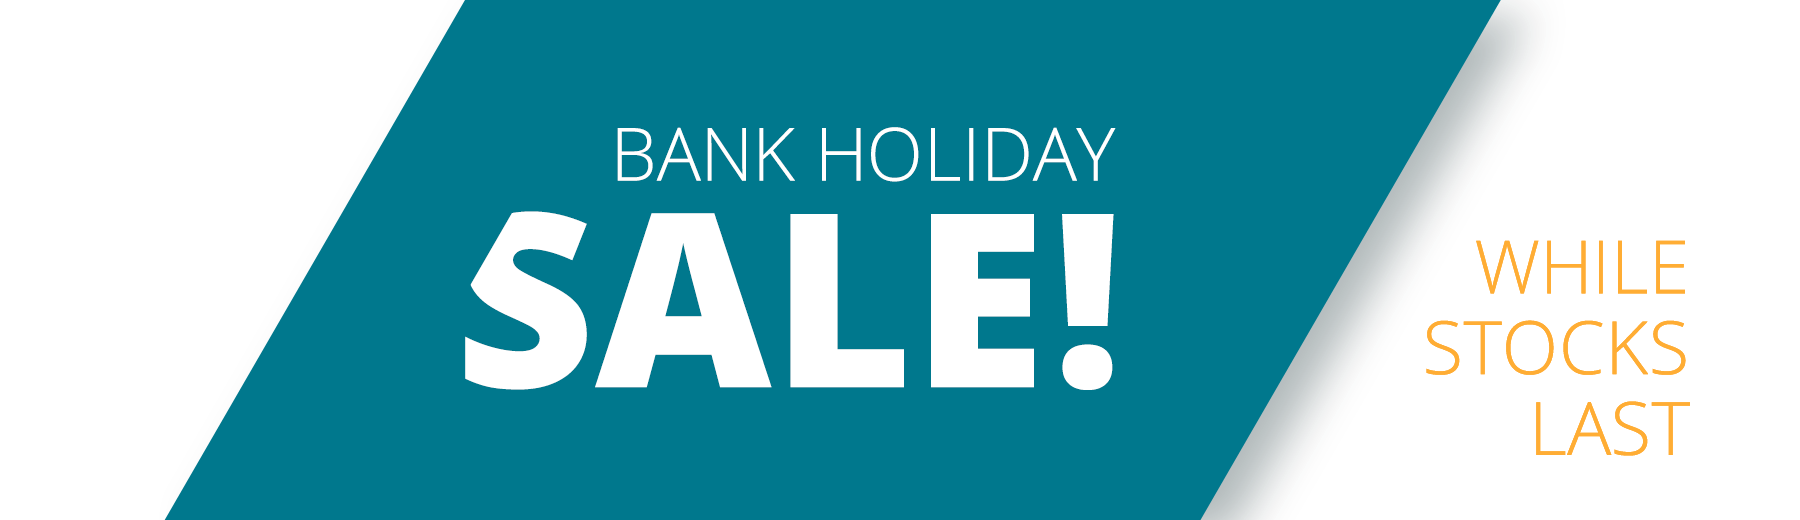 Bank Holiday Sale - while stocks last